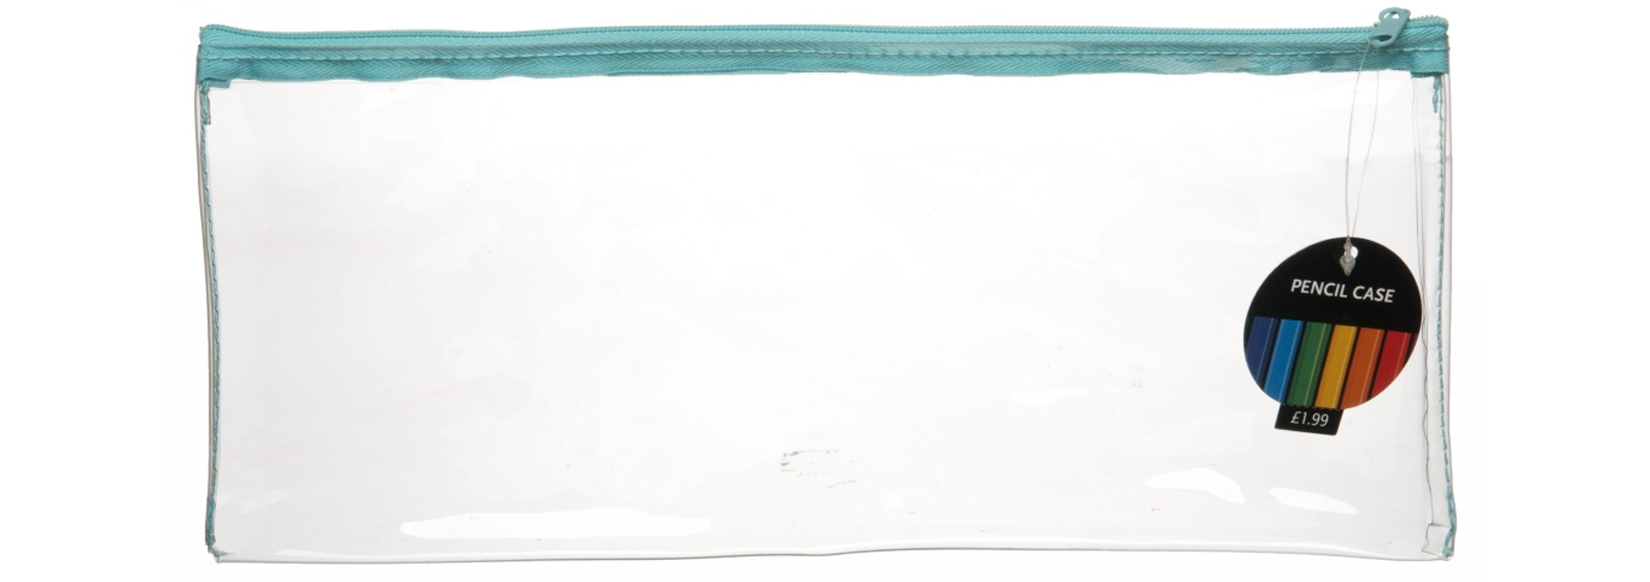 wh smith large clear pencil case